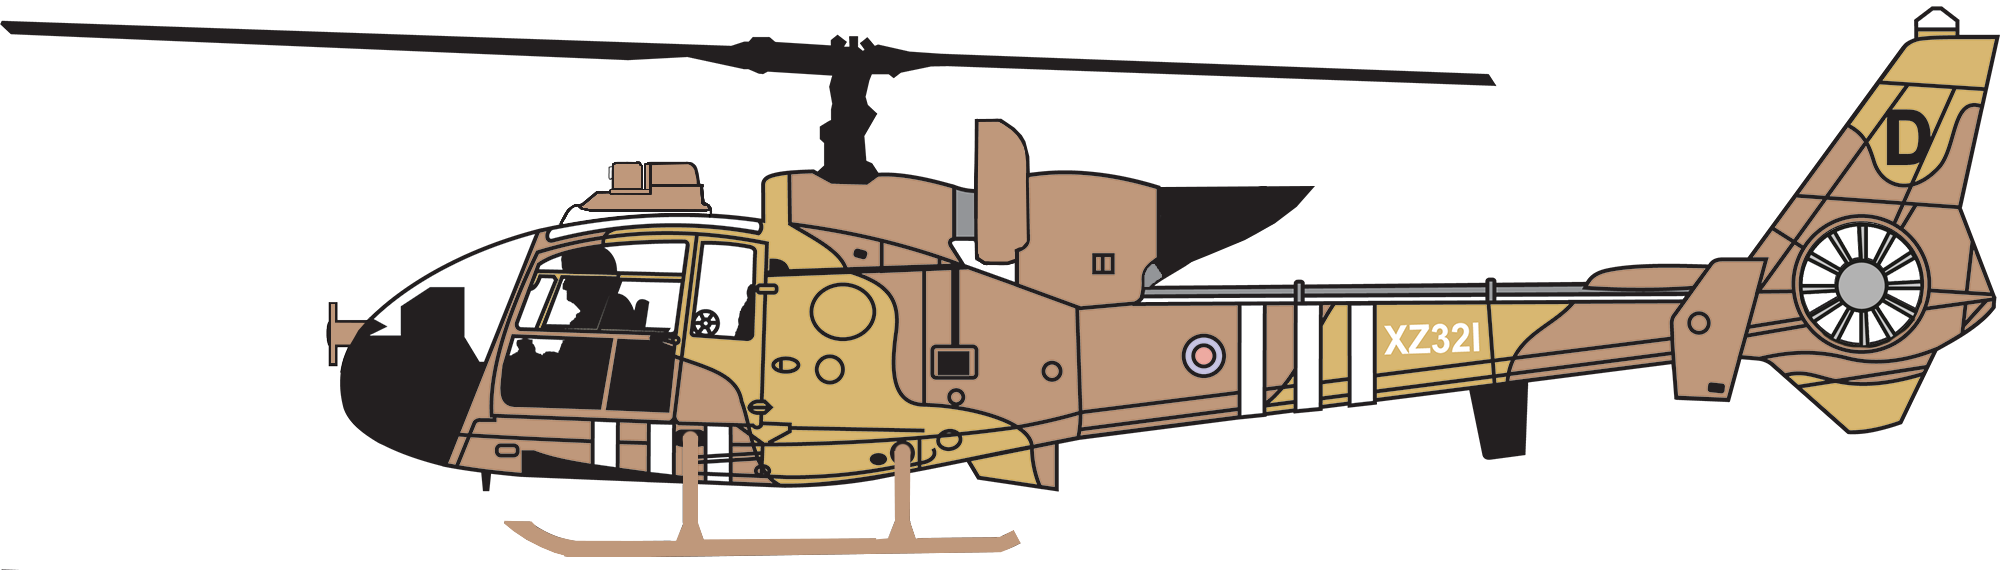 Xz westland gazelle ah. Helicopter clipart war helicopter